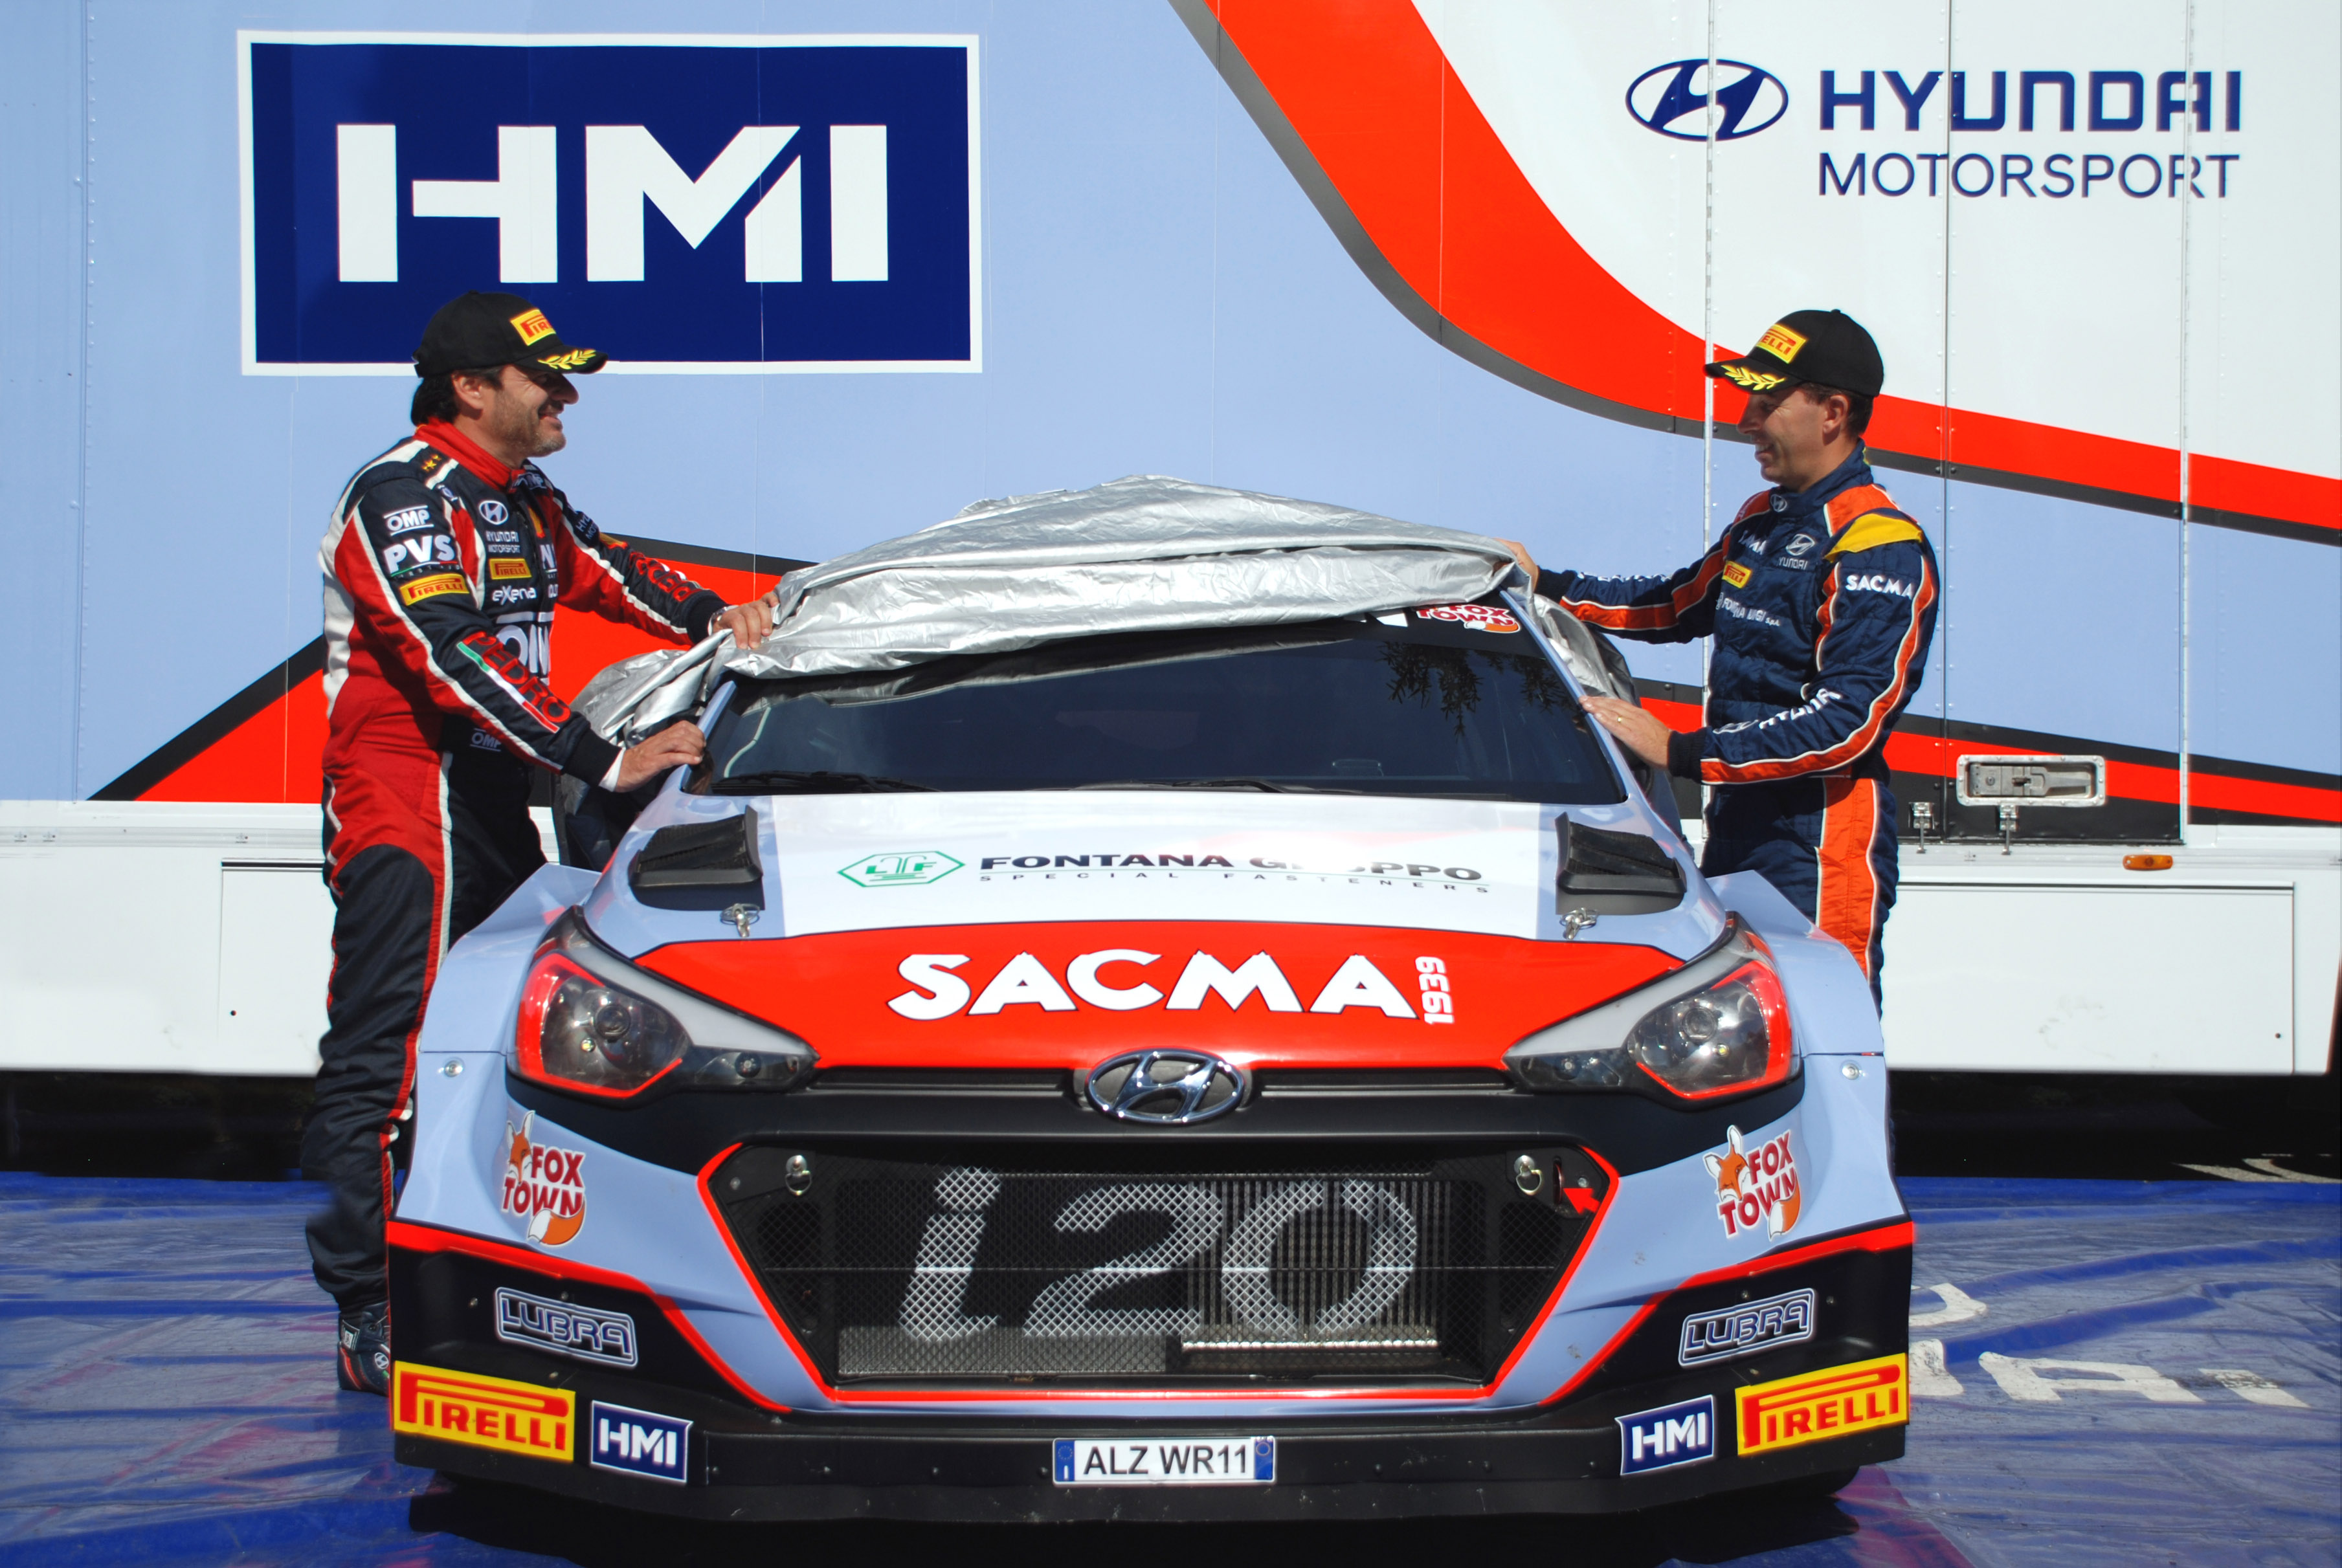 2 Hyundai New Generation i20 WRC 2016 reached the home of  HMI - Italian Rally Team